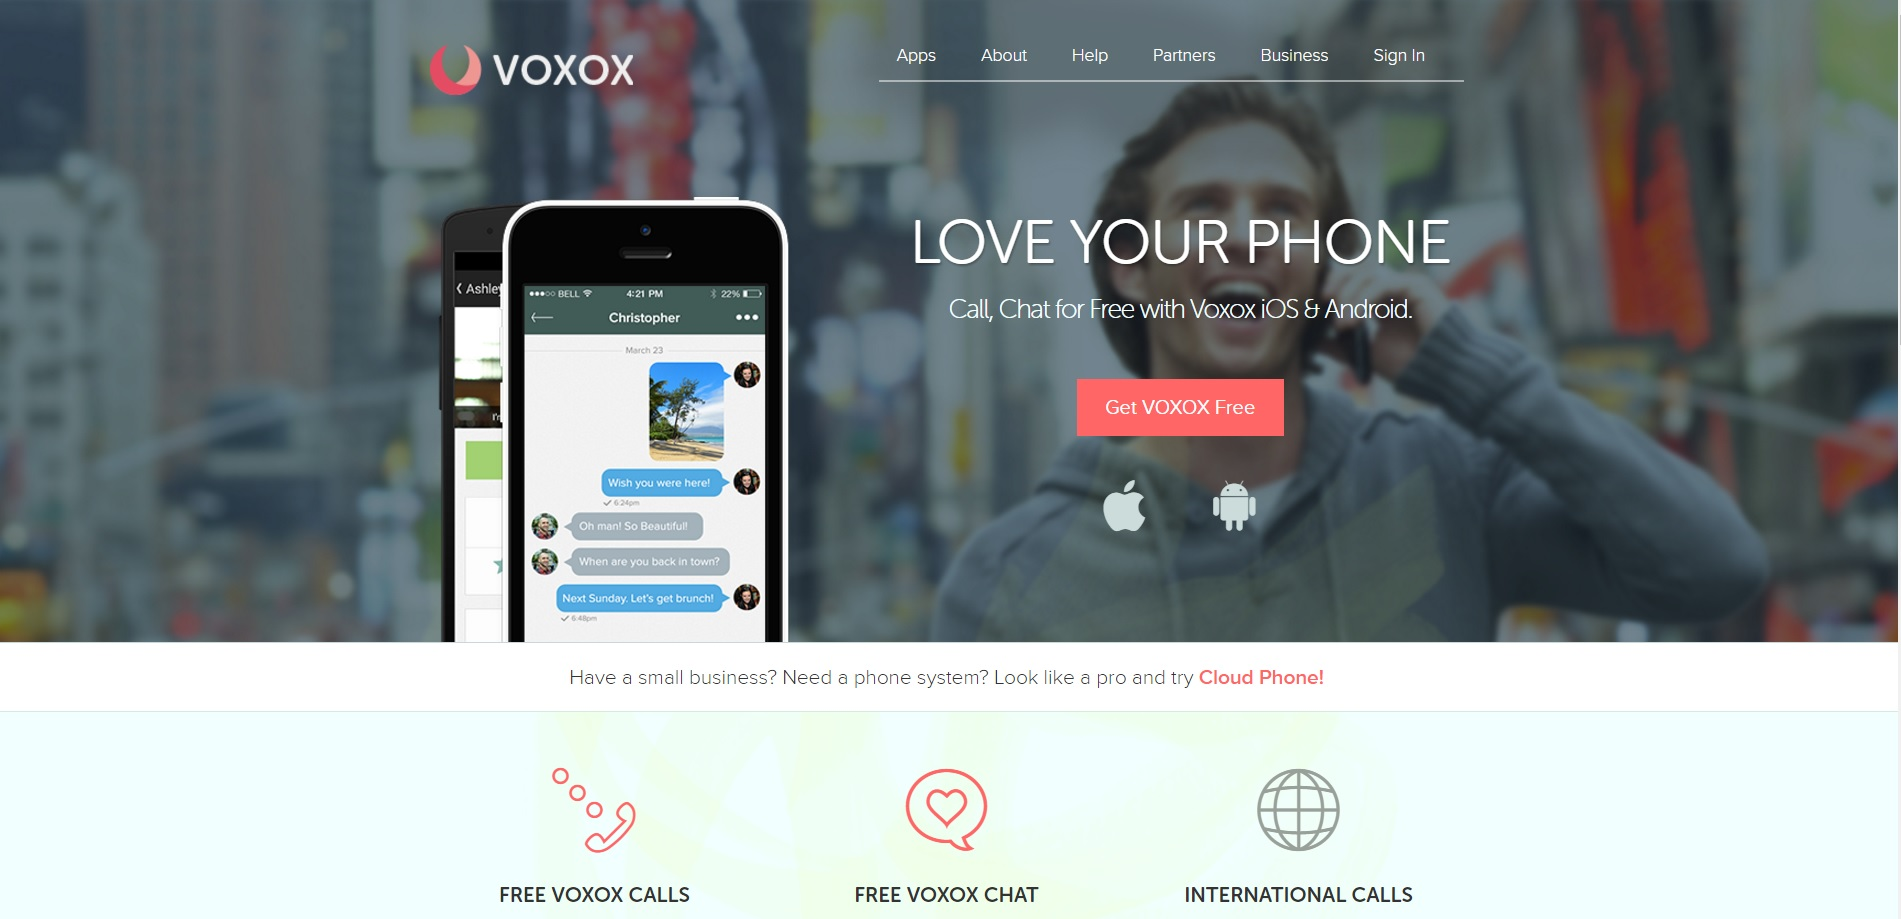 Voxox WhatsApp - Create Fake WhatsApp Account via USA Number